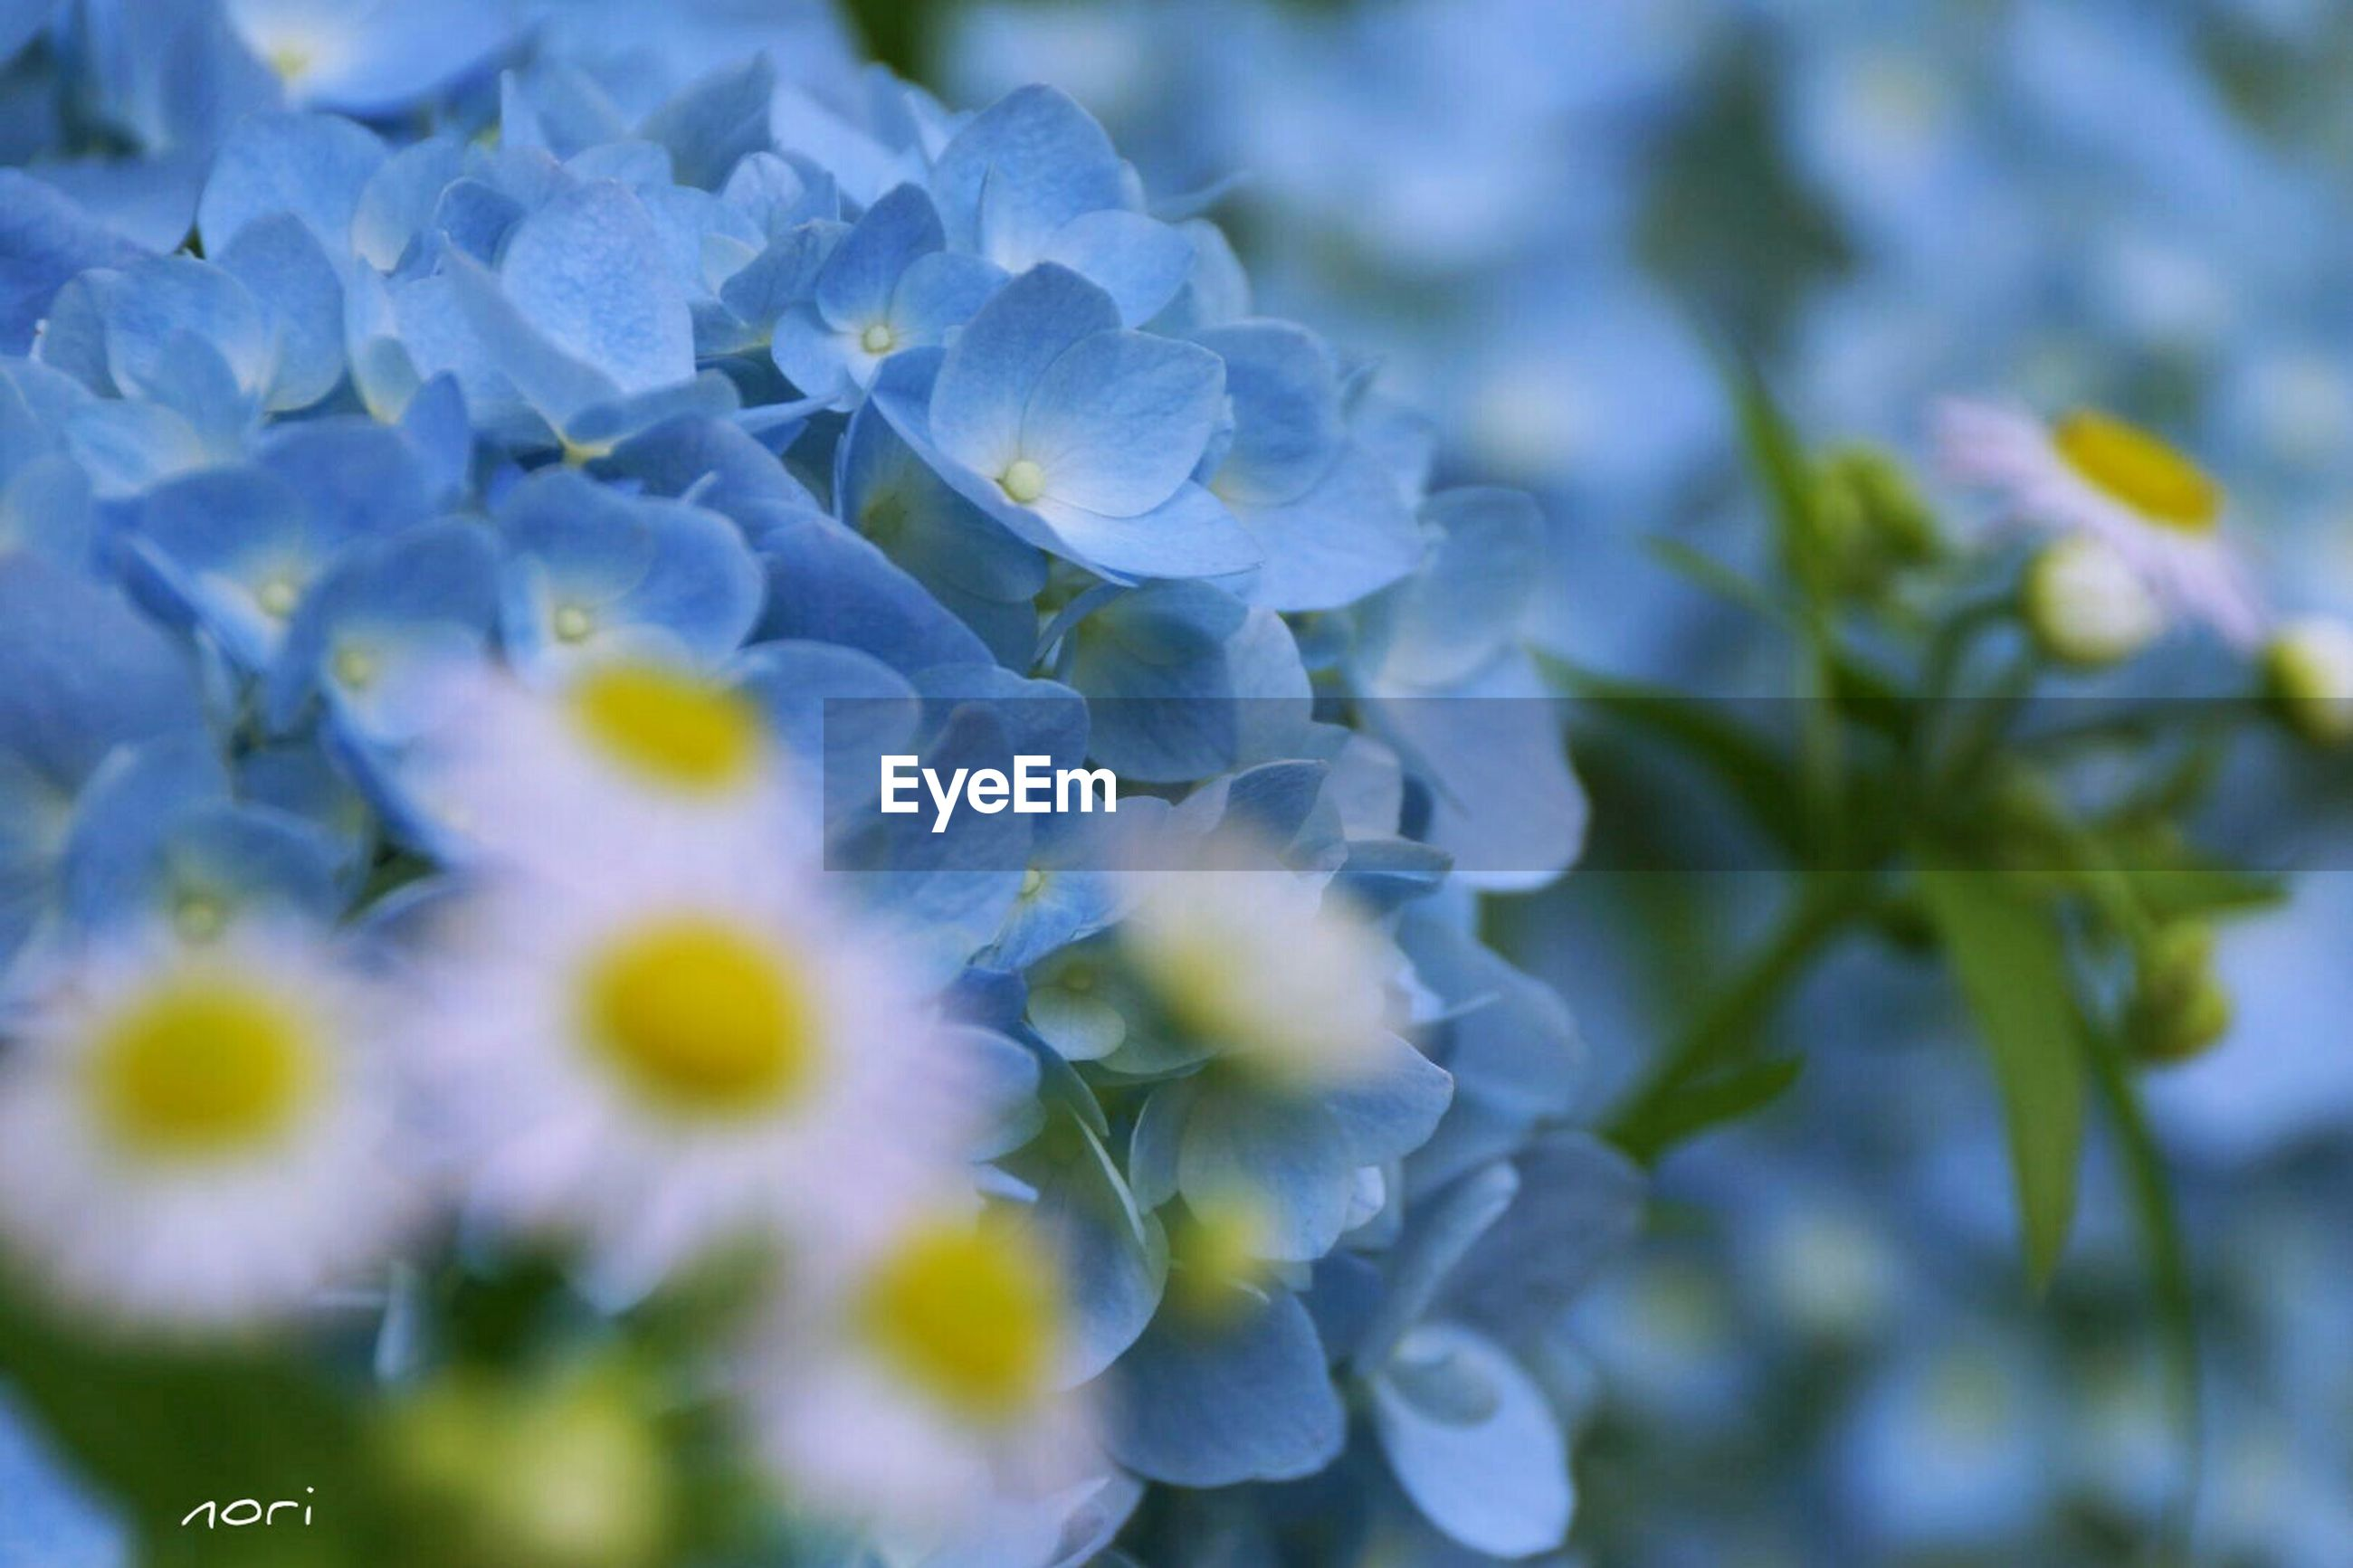 flower, freshness, fragility, petal, growth, flower head, beauty in nature, close-up, focus on foreground, nature, blooming, plant, selective focus, purple, in bloom, white color, day, botany, blue, blossom